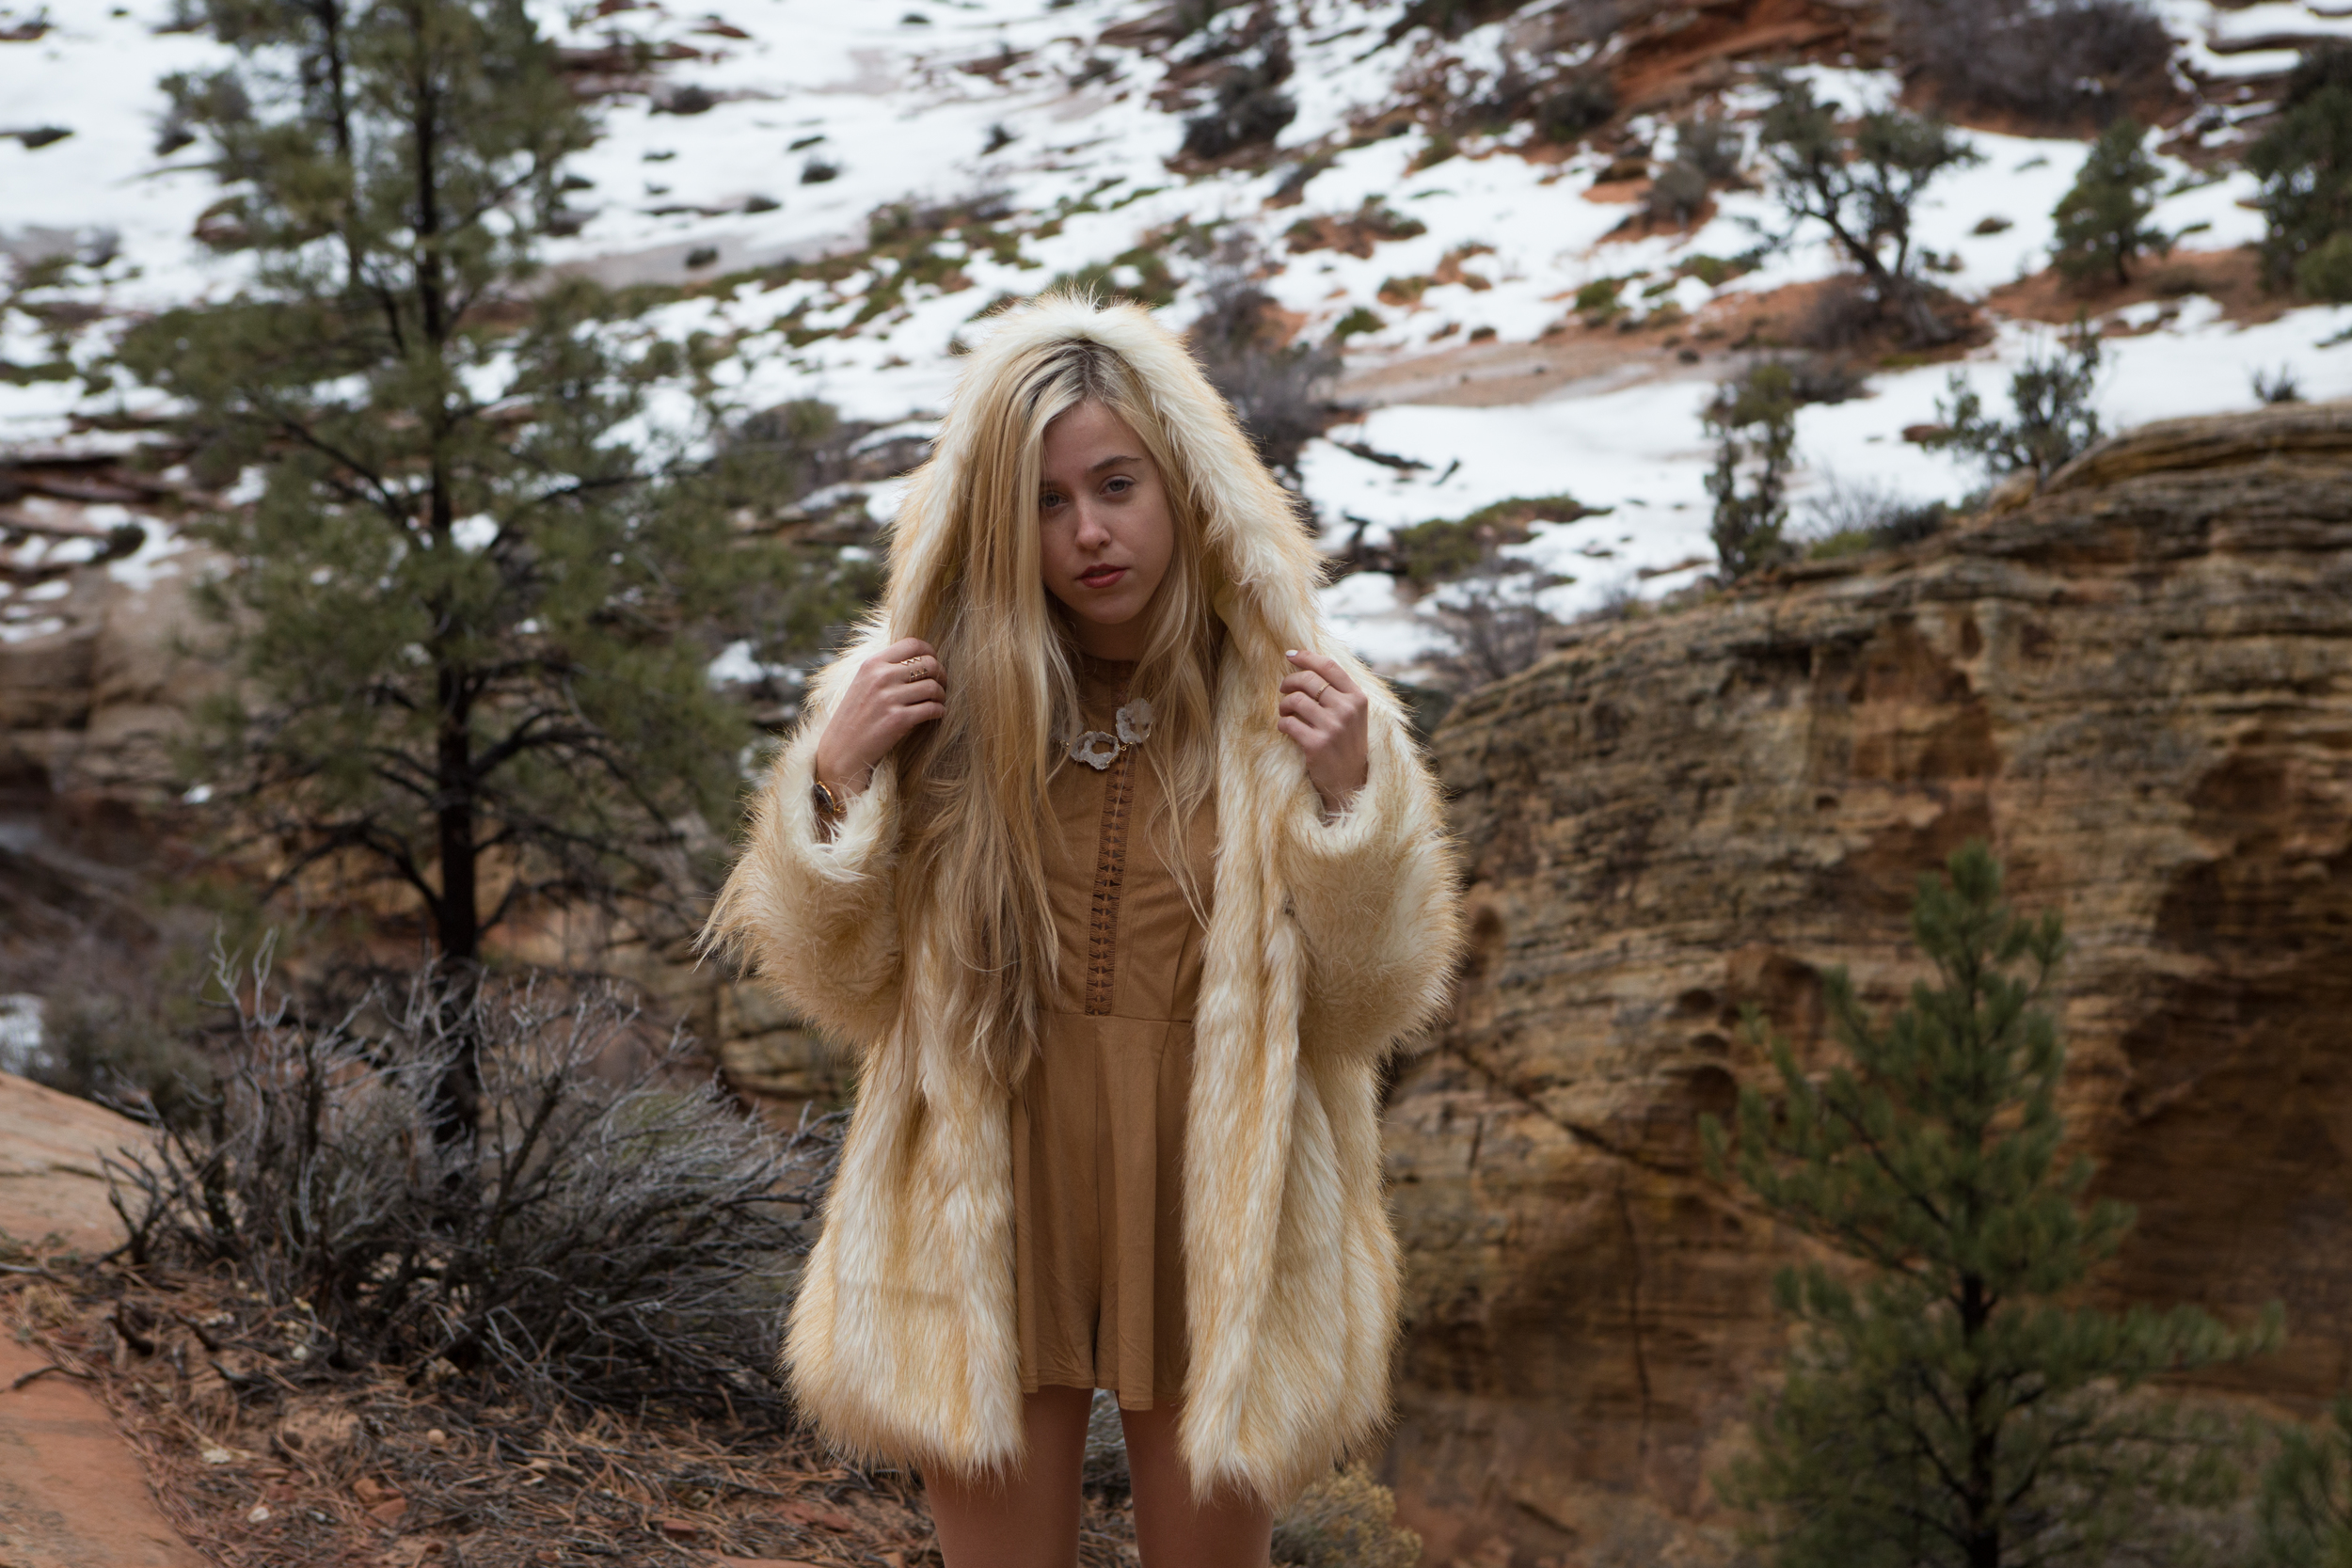 AstroBandit_JordanRose_Zion_WinterInZion_Snow_Fashion_NationalPark_4.jpg